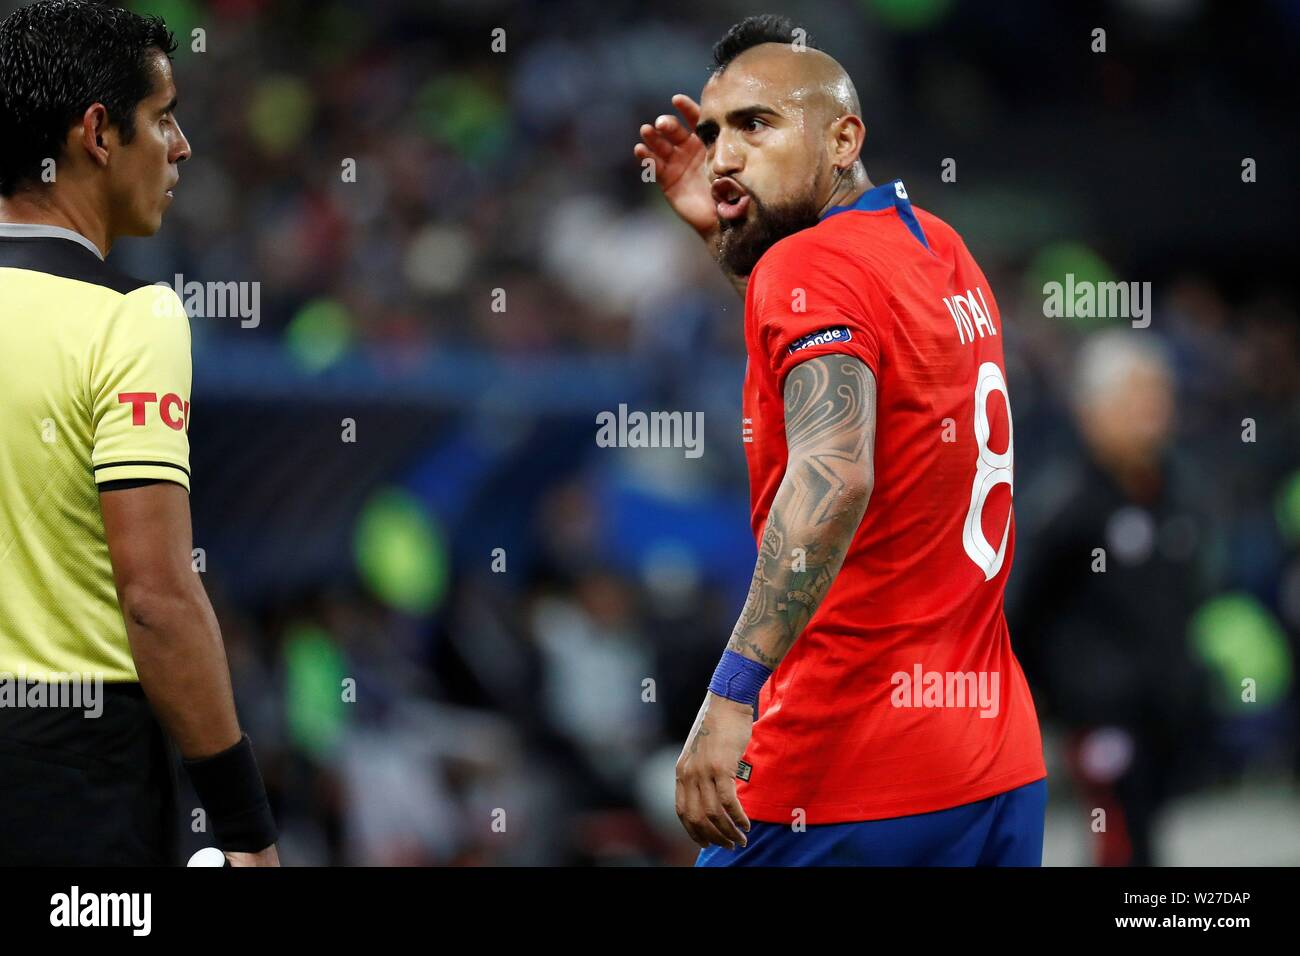 Sao Paulo, Brazil. 06th July, 2019. Chilean player Arturo Vidal argues with referee, during the Copa America 2019 3rd place soccer match between Argentina and Chile, at Arena Corinthians Stadium in Sao Paulo, Brazil, 6 July 2019. Credit: Sebastiao Moreira/EFE/Alamy Live News - Stock Image